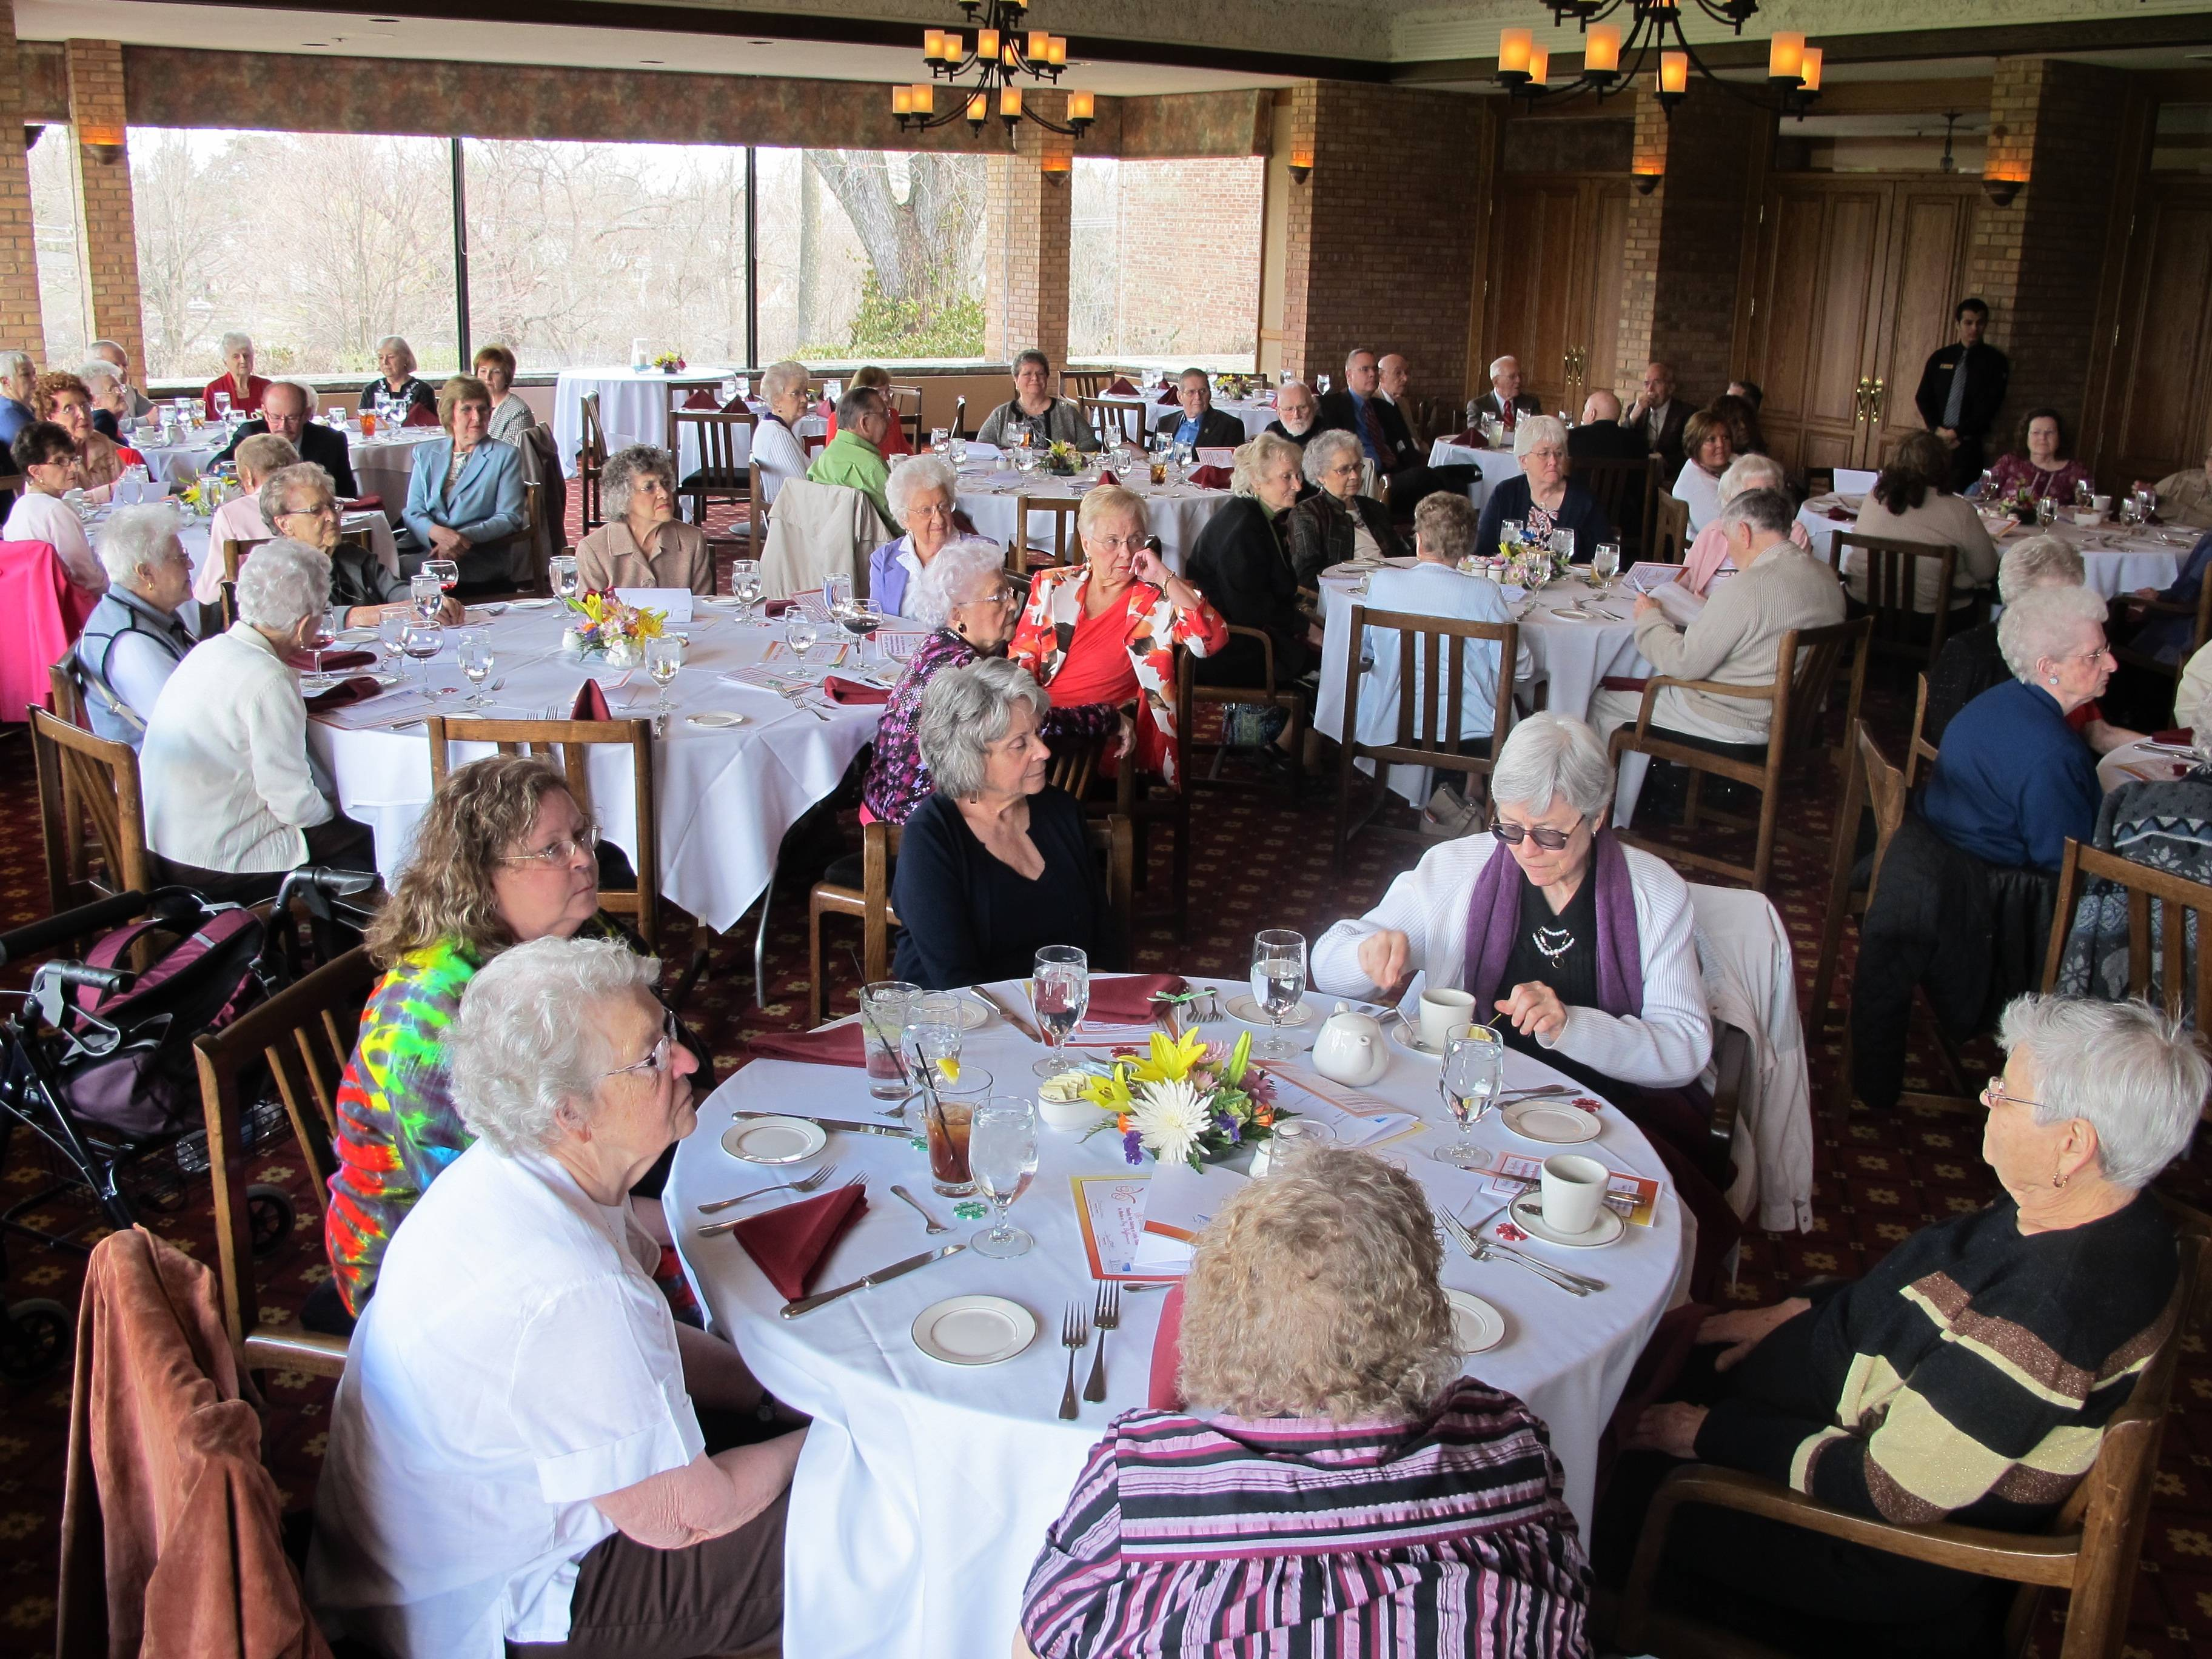 Vista volunteers are honored for their service in 2012 at a luncheon held at Glen Flora Country Club in Waukegan,